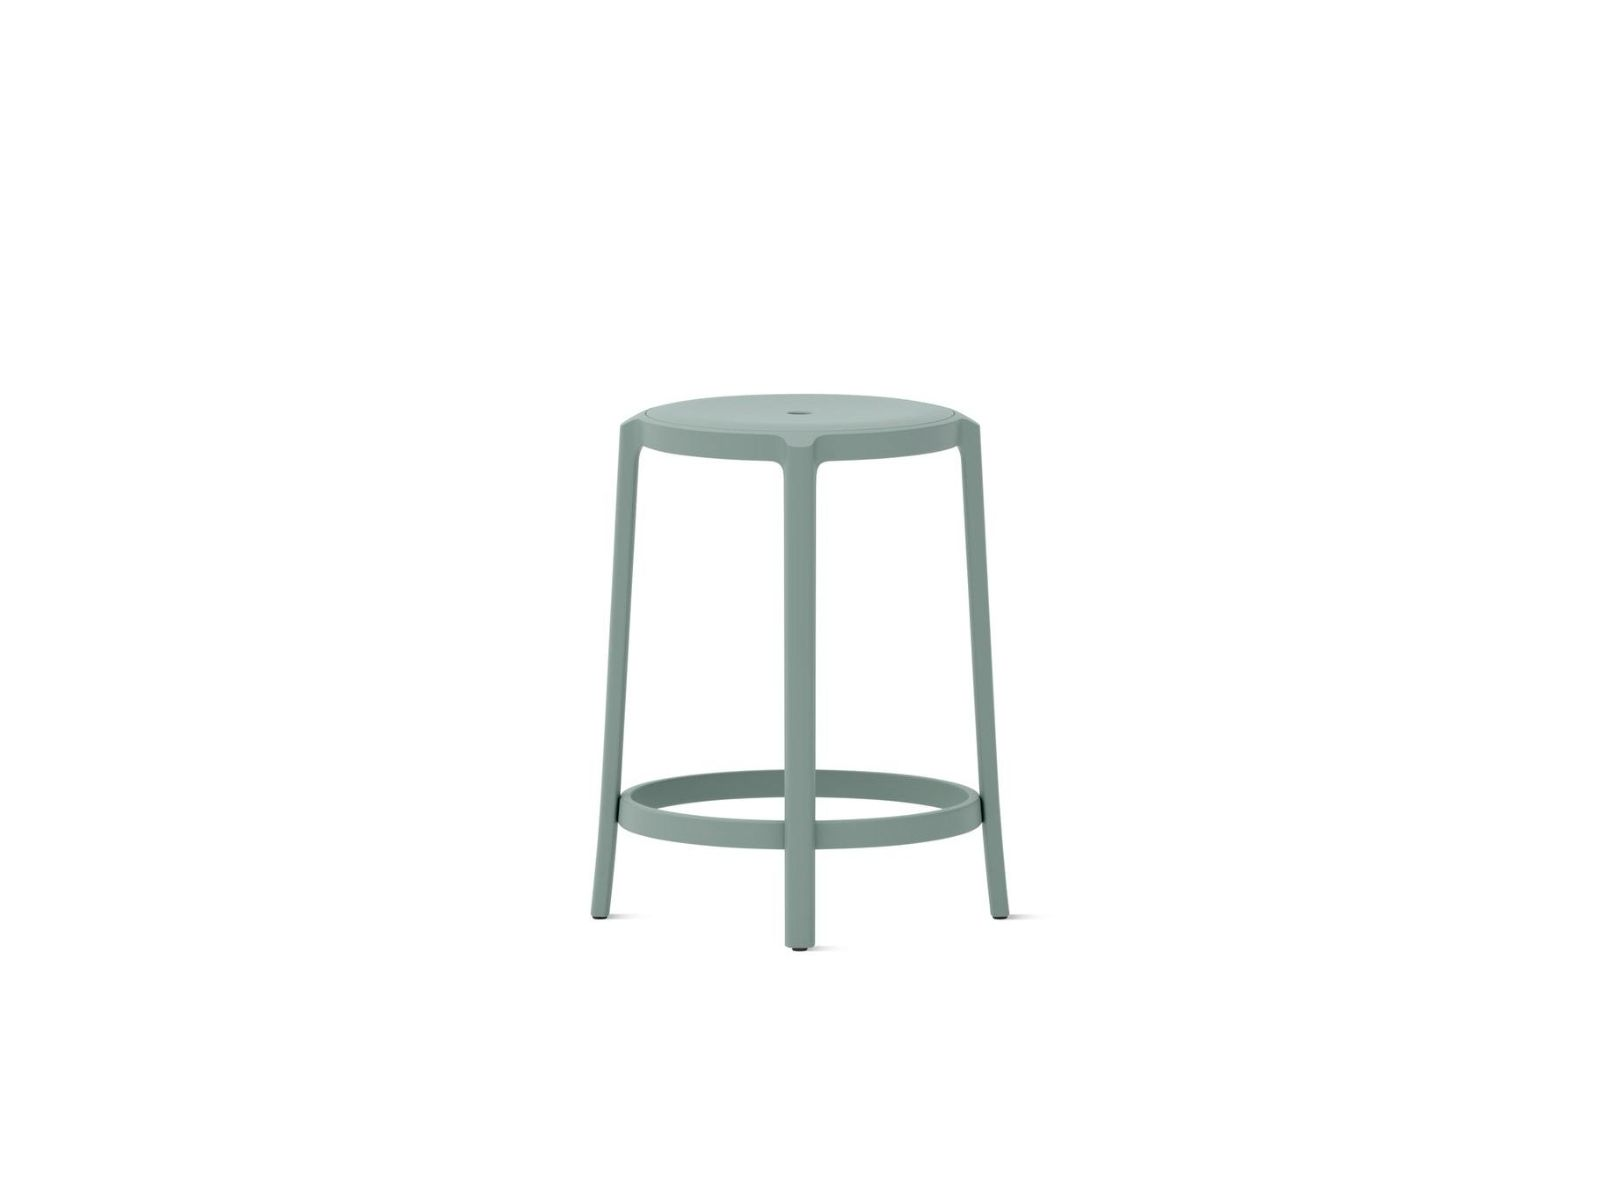 Stools for Offices